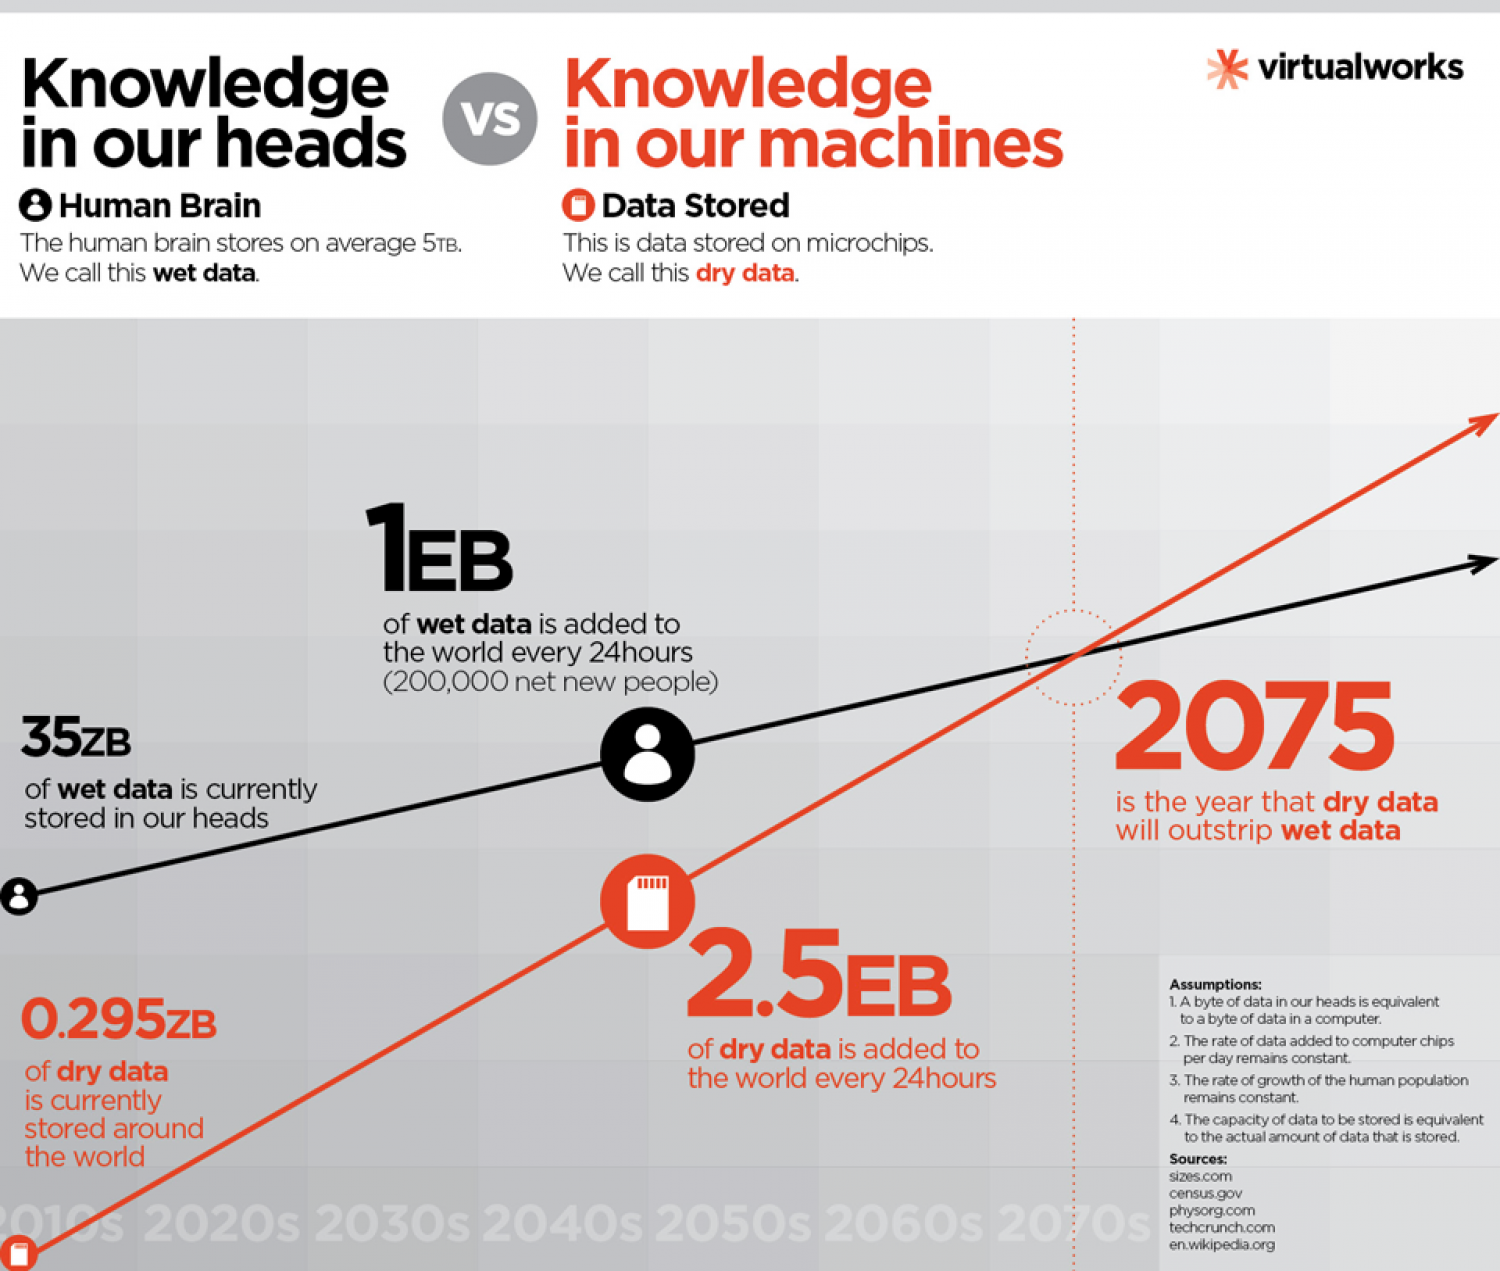 Knowledge in our heads vs. knowledge in our machines Infographic